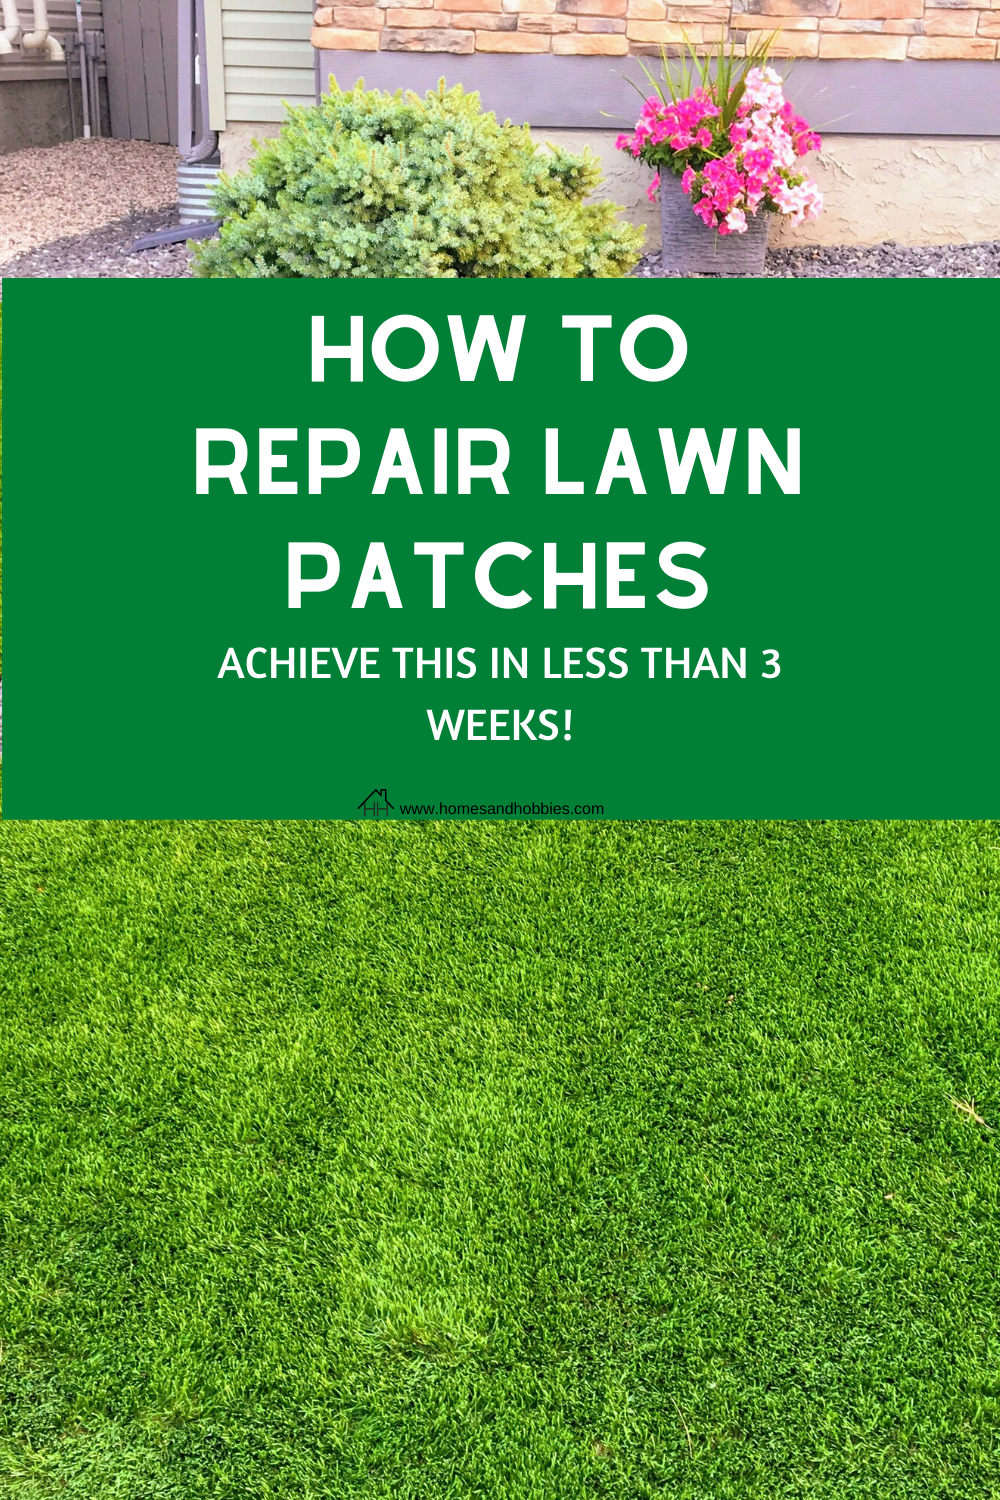 Step By Step Diy For Repairing Patchy Lawn In 2020 Lawn Repair Lawn Lawn Care Tips